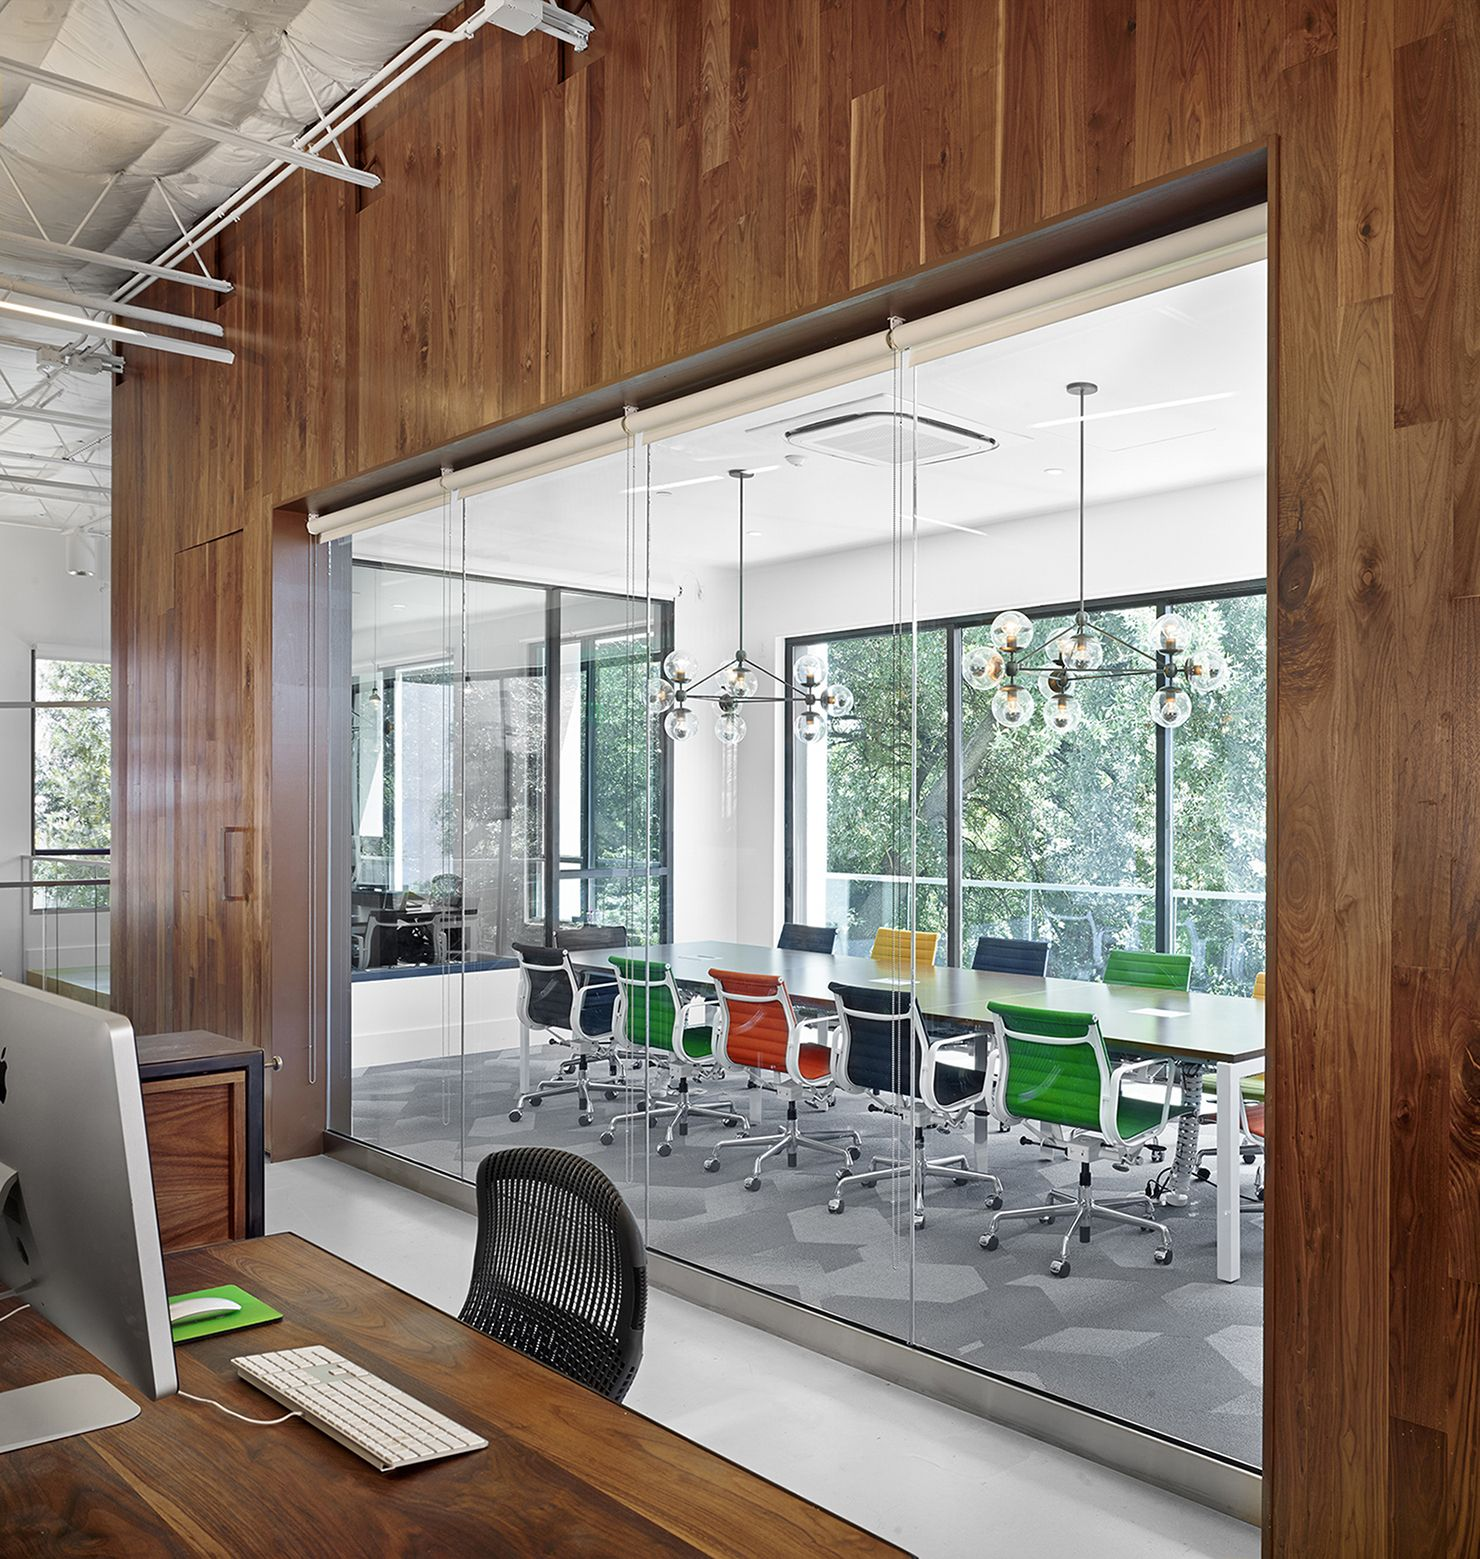 Small Office Room Designs Inspiring Office Meeting Rooms Reveal Their Playful Designs